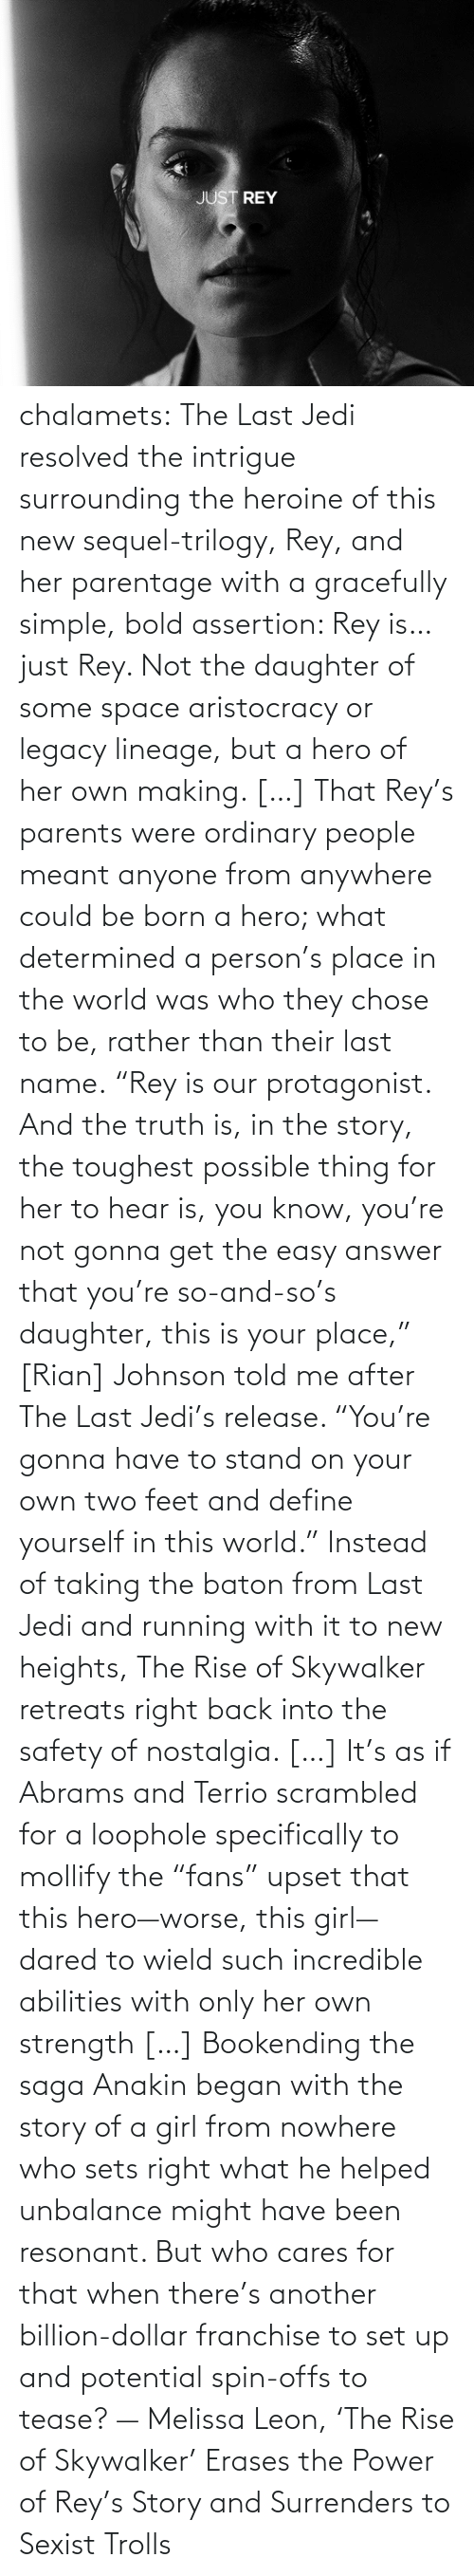 "After The: chalamets:  The Last Jedi resolved the intrigue surrounding the heroine of this new sequel-trilogy, Rey, and her parentage with a gracefully simple, bold assertion: Rey is… just Rey. Not the daughter of some space aristocracy or legacy lineage, but a hero of her own making. […] That Rey's parents were ordinary people meant anyone from anywhere could be born a hero; what determined a person's place in the world was who they chose to be, rather than their last name. ""Rey is our protagonist. And the truth is, in the story, the toughest possible thing for her to hear is, you know, you're not gonna get the easy answer that you're so-and-so's daughter, this is your place,"" [Rian] Johnson told me after The Last Jedi's release. ""You're gonna have to stand on your own two feet and define yourself in this world."" Instead of taking the baton from Last Jedi and running with it to new heights, The Rise of Skywalker retreats right back into the safety of nostalgia. […] It's as if Abrams and Terrio scrambled for a loophole specifically to mollify the ""fans"" upset that this hero—worse, this girl—dared to wield such incredible abilities with only her own strength […] Bookending the saga Anakin began with the story of a girl from nowhere who sets right what he helped unbalance might have been resonant. But who cares for that when there's another billion-dollar franchise to set up and potential spin-offs to tease? — Melissa Leon, 'The Rise of Skywalker' Erases the Power of Rey's Story and Surrenders to Sexist Trolls"